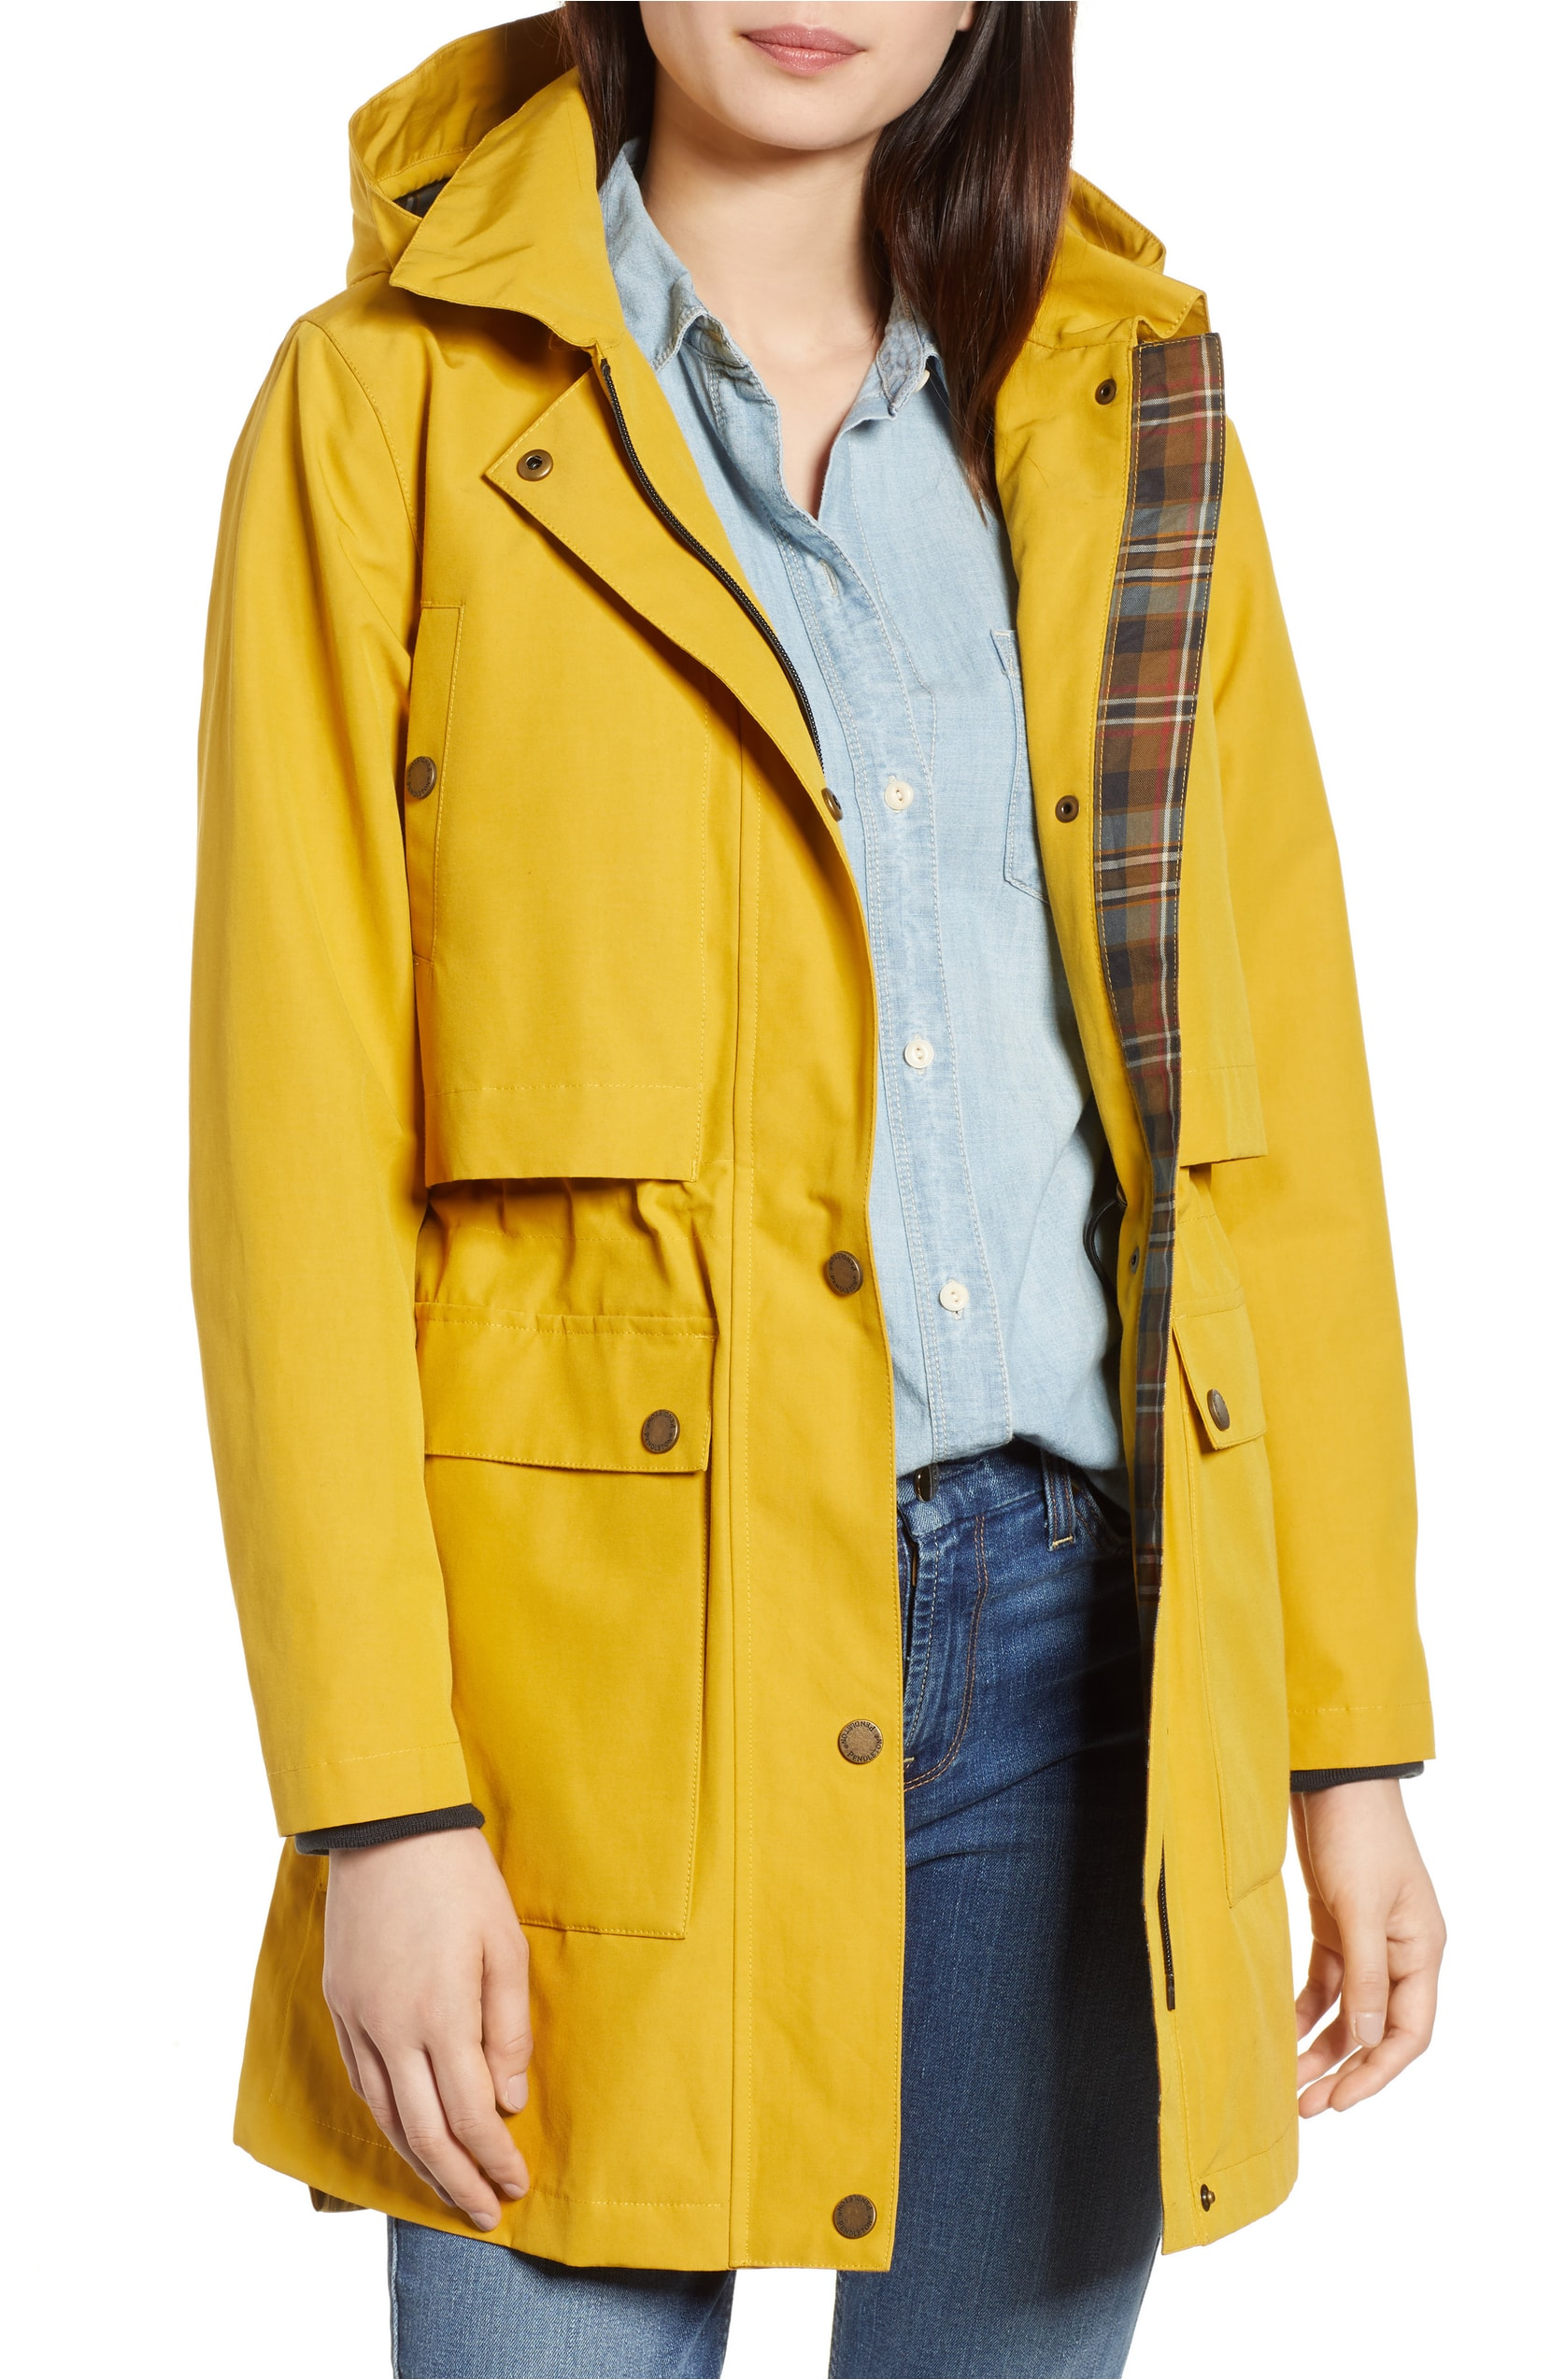 Port Townsend Rain Jacket. Sale: $216.90 / After Sale: $325. (Image: Nordstrom){ }